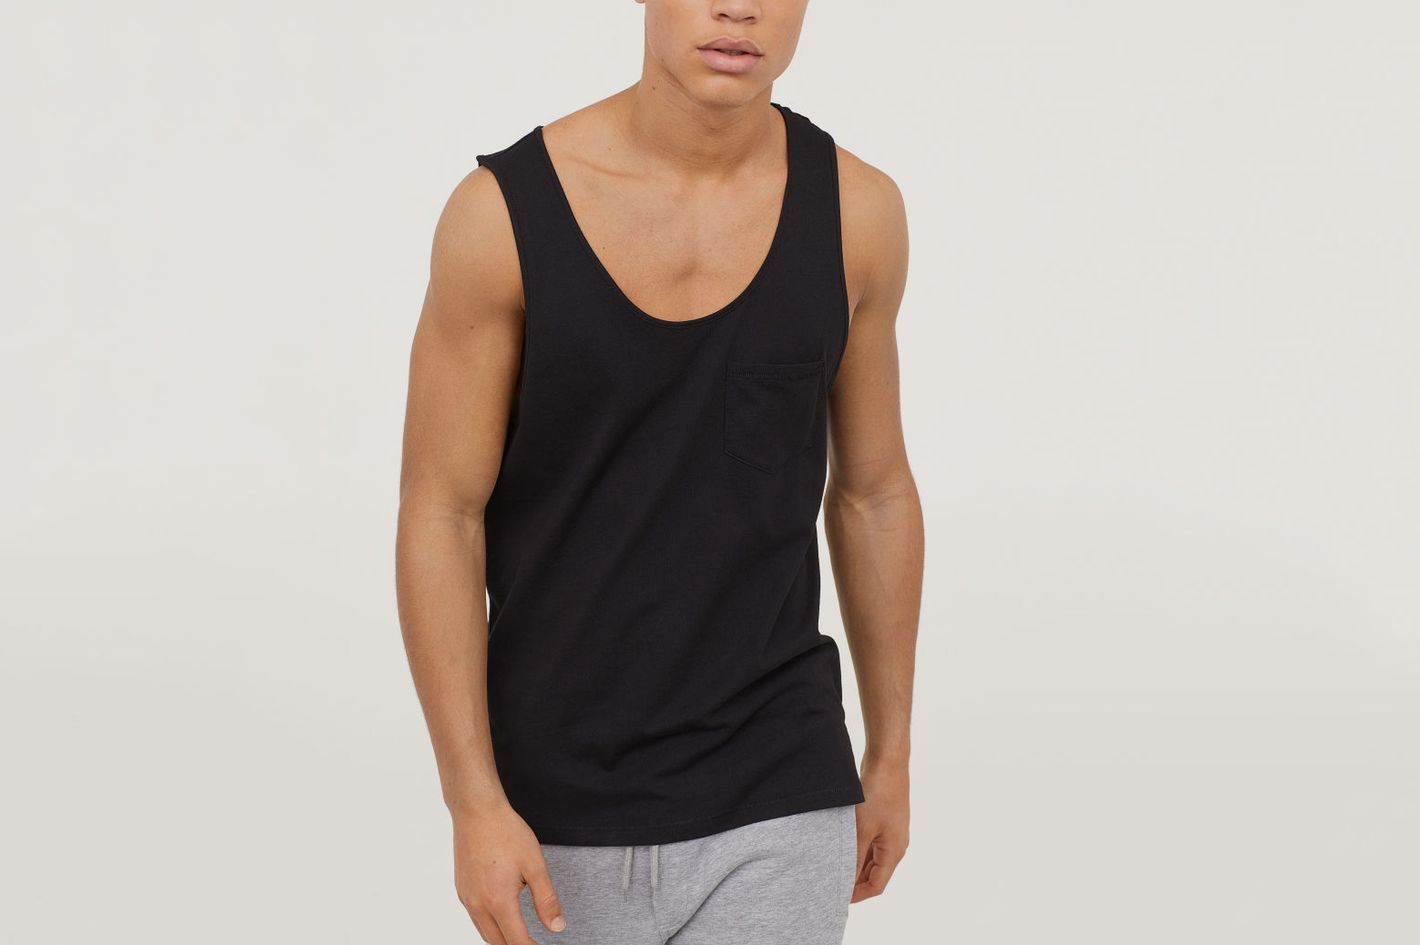 H&M men's tank top with pocket